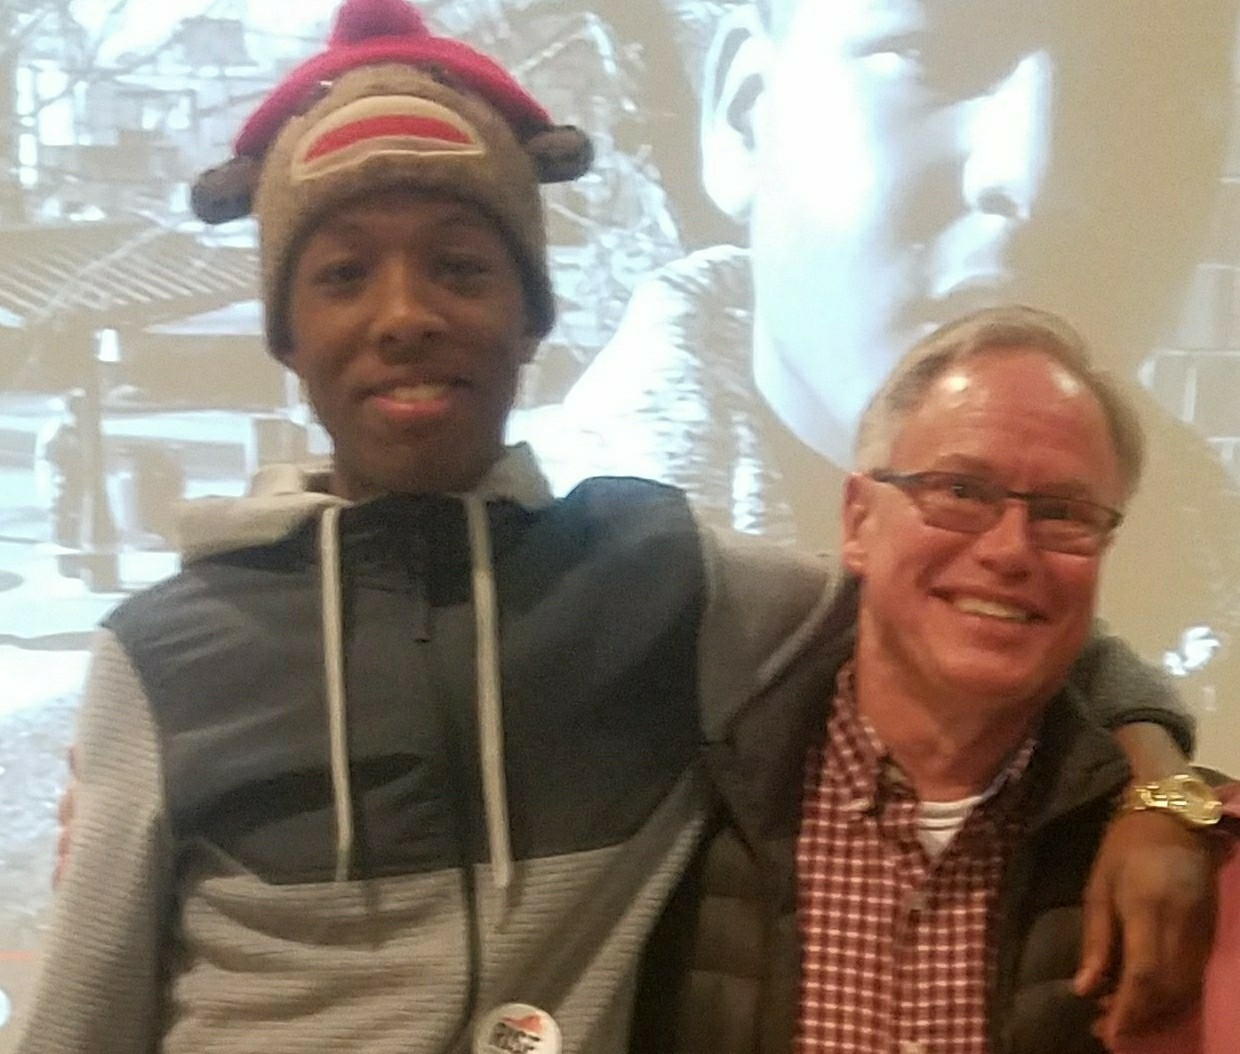 """This one is me with one of my ex-Richmond Juvenile Detention Center kids, Doug, taken at the Richmond Mayor's YouthVoiceMattersRVA Town Hall Meeting on Youth Violence held on Jan. 18, 2018 at the downtown Richmond Public Library. After his release from Detention, Doug has been consistent in working with Rise for Youth, a youth justice reform initiative of the Richmond Legal Aid Society. It's always good to see one of """"my kids"""" doing well, and especially using their knowledge of the juvenile justice system to lobby and work for juvenile justice reform, as it can lead to major improvements for Black family cohesiveness and for the benefit of the entire black (and white) communities. One of my interests is in lobbying for economic equity and racial justice for the Black community in Richmond and the U.S."""